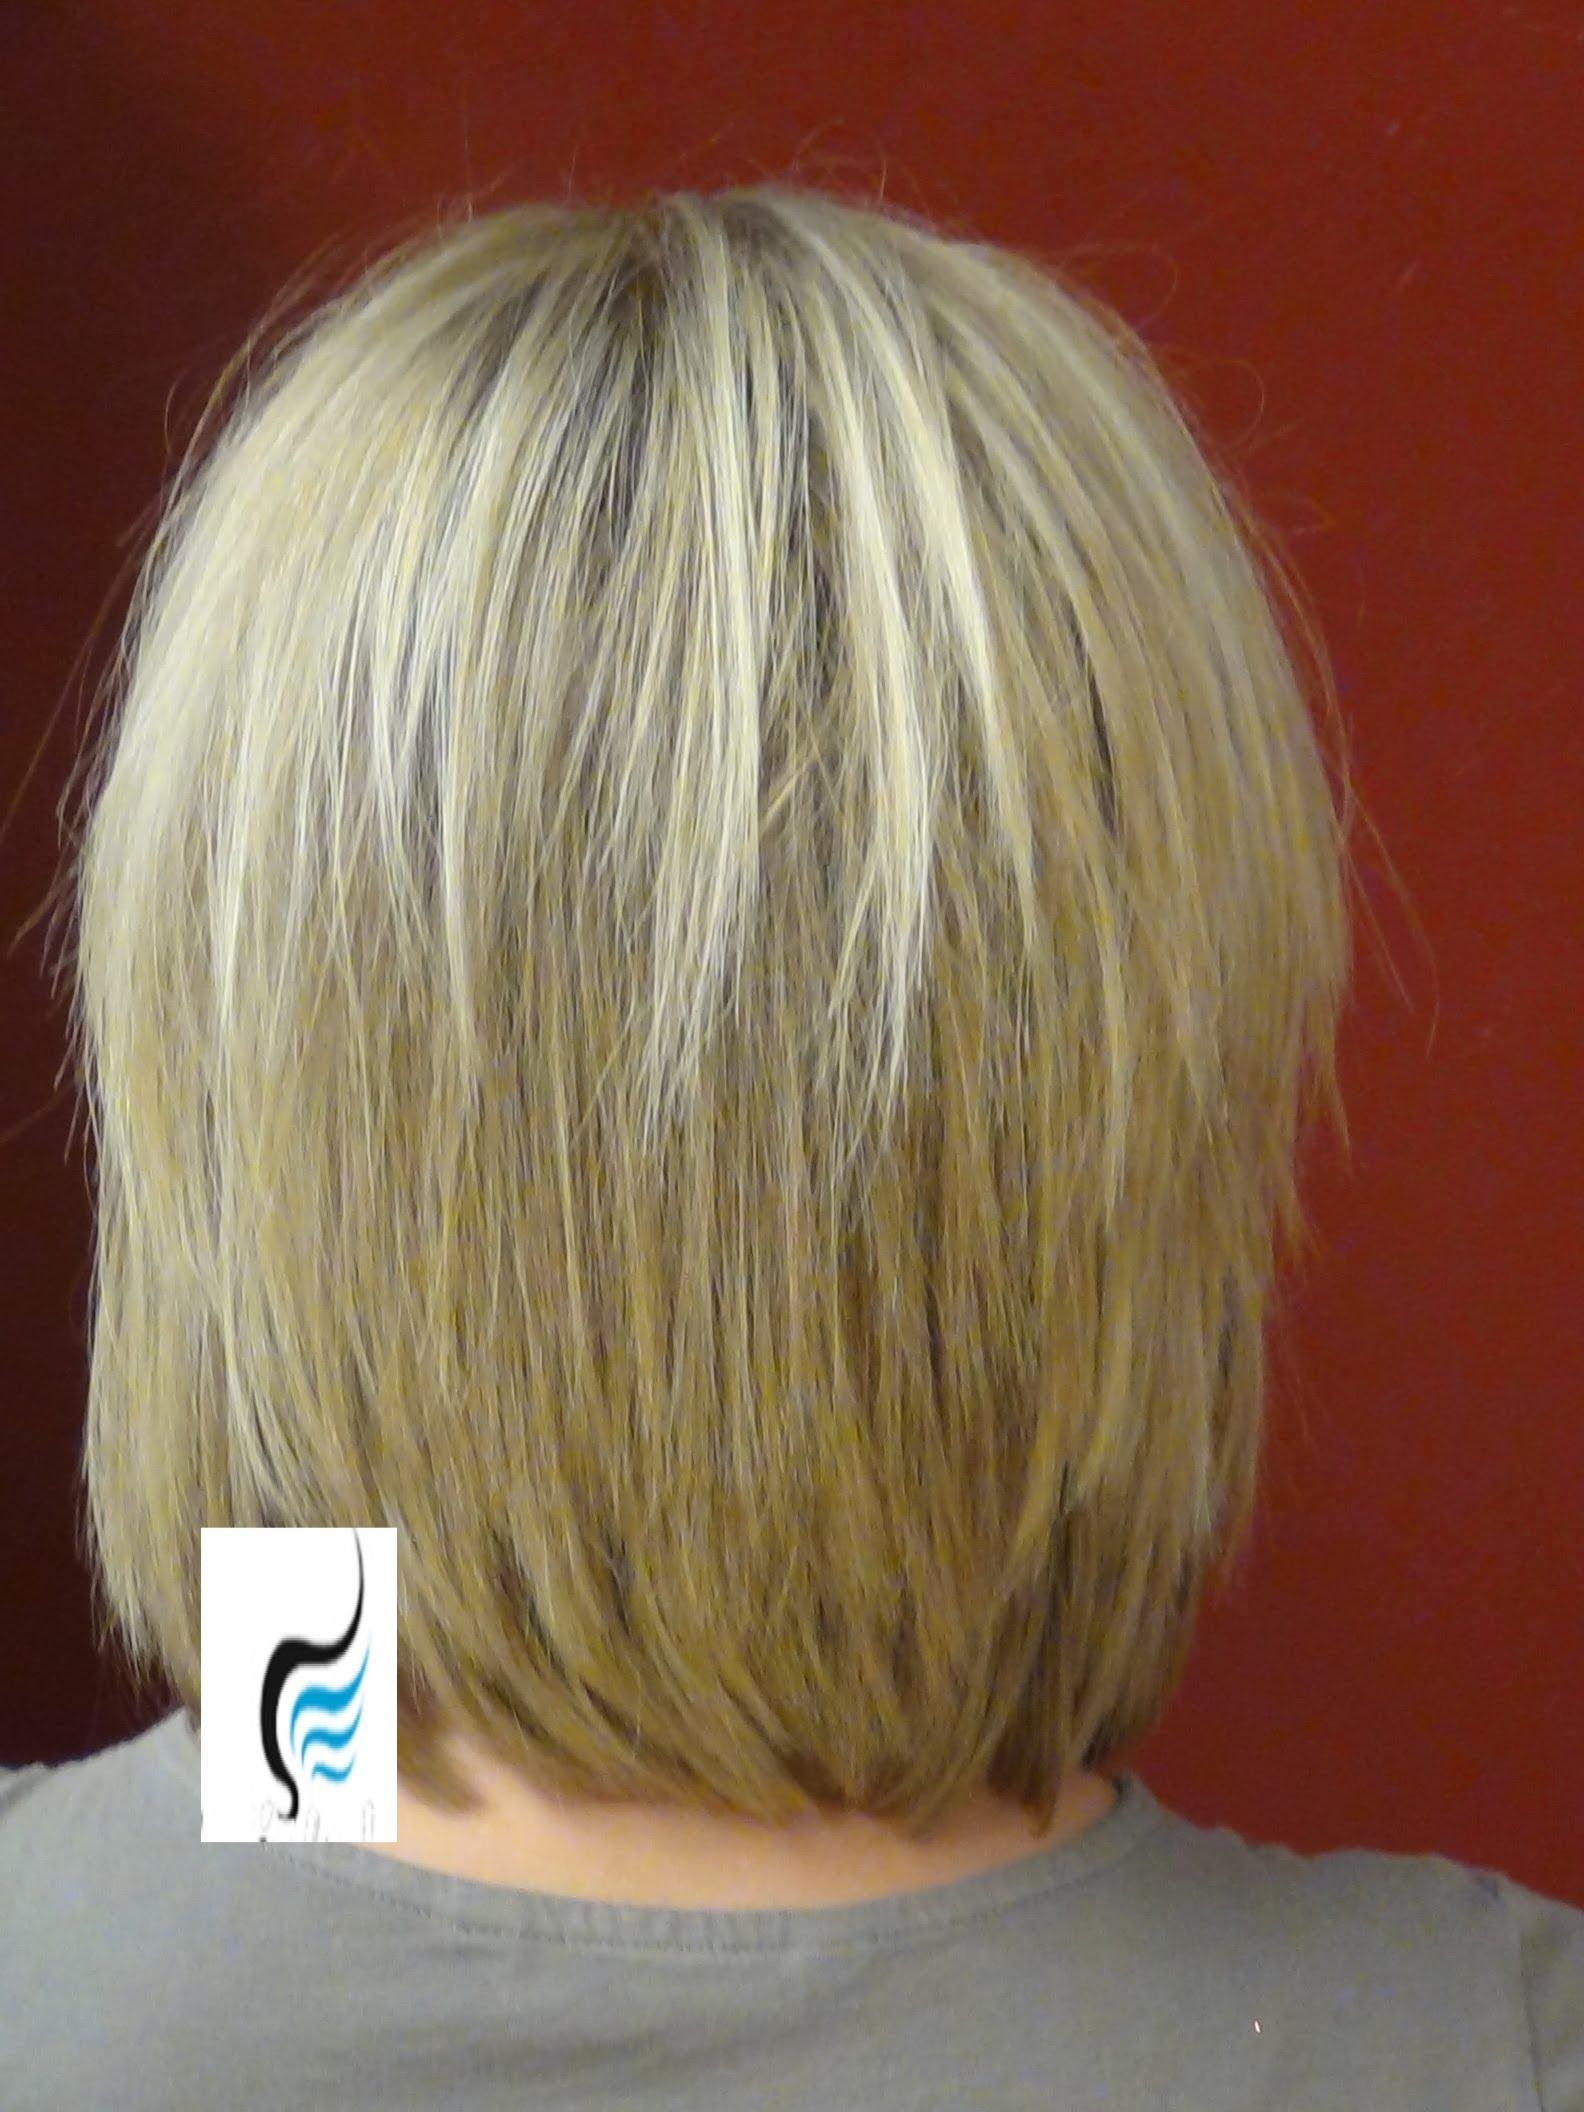 how to grow out a bad haircut | cute hairstyles by